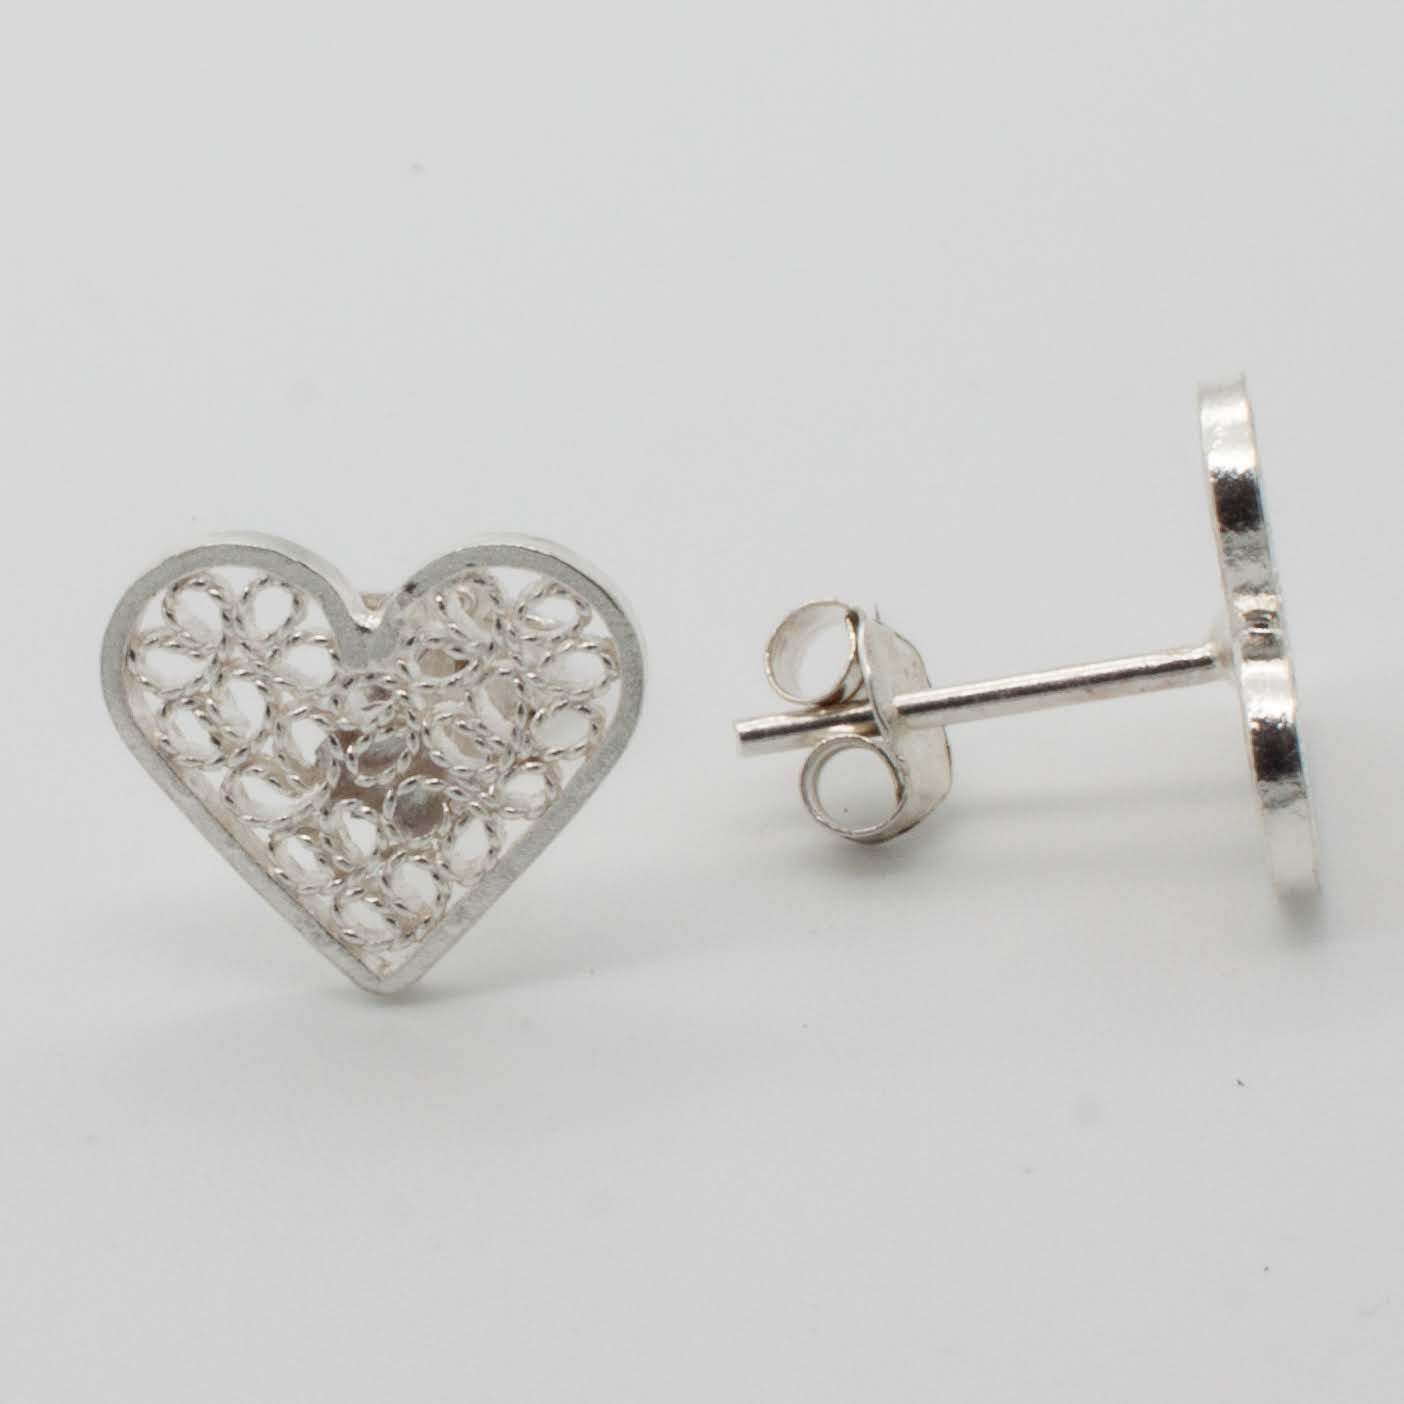 Filigree Sterling Silver Heart Web (Coraszon Web) Stud Earrings by Gaviota